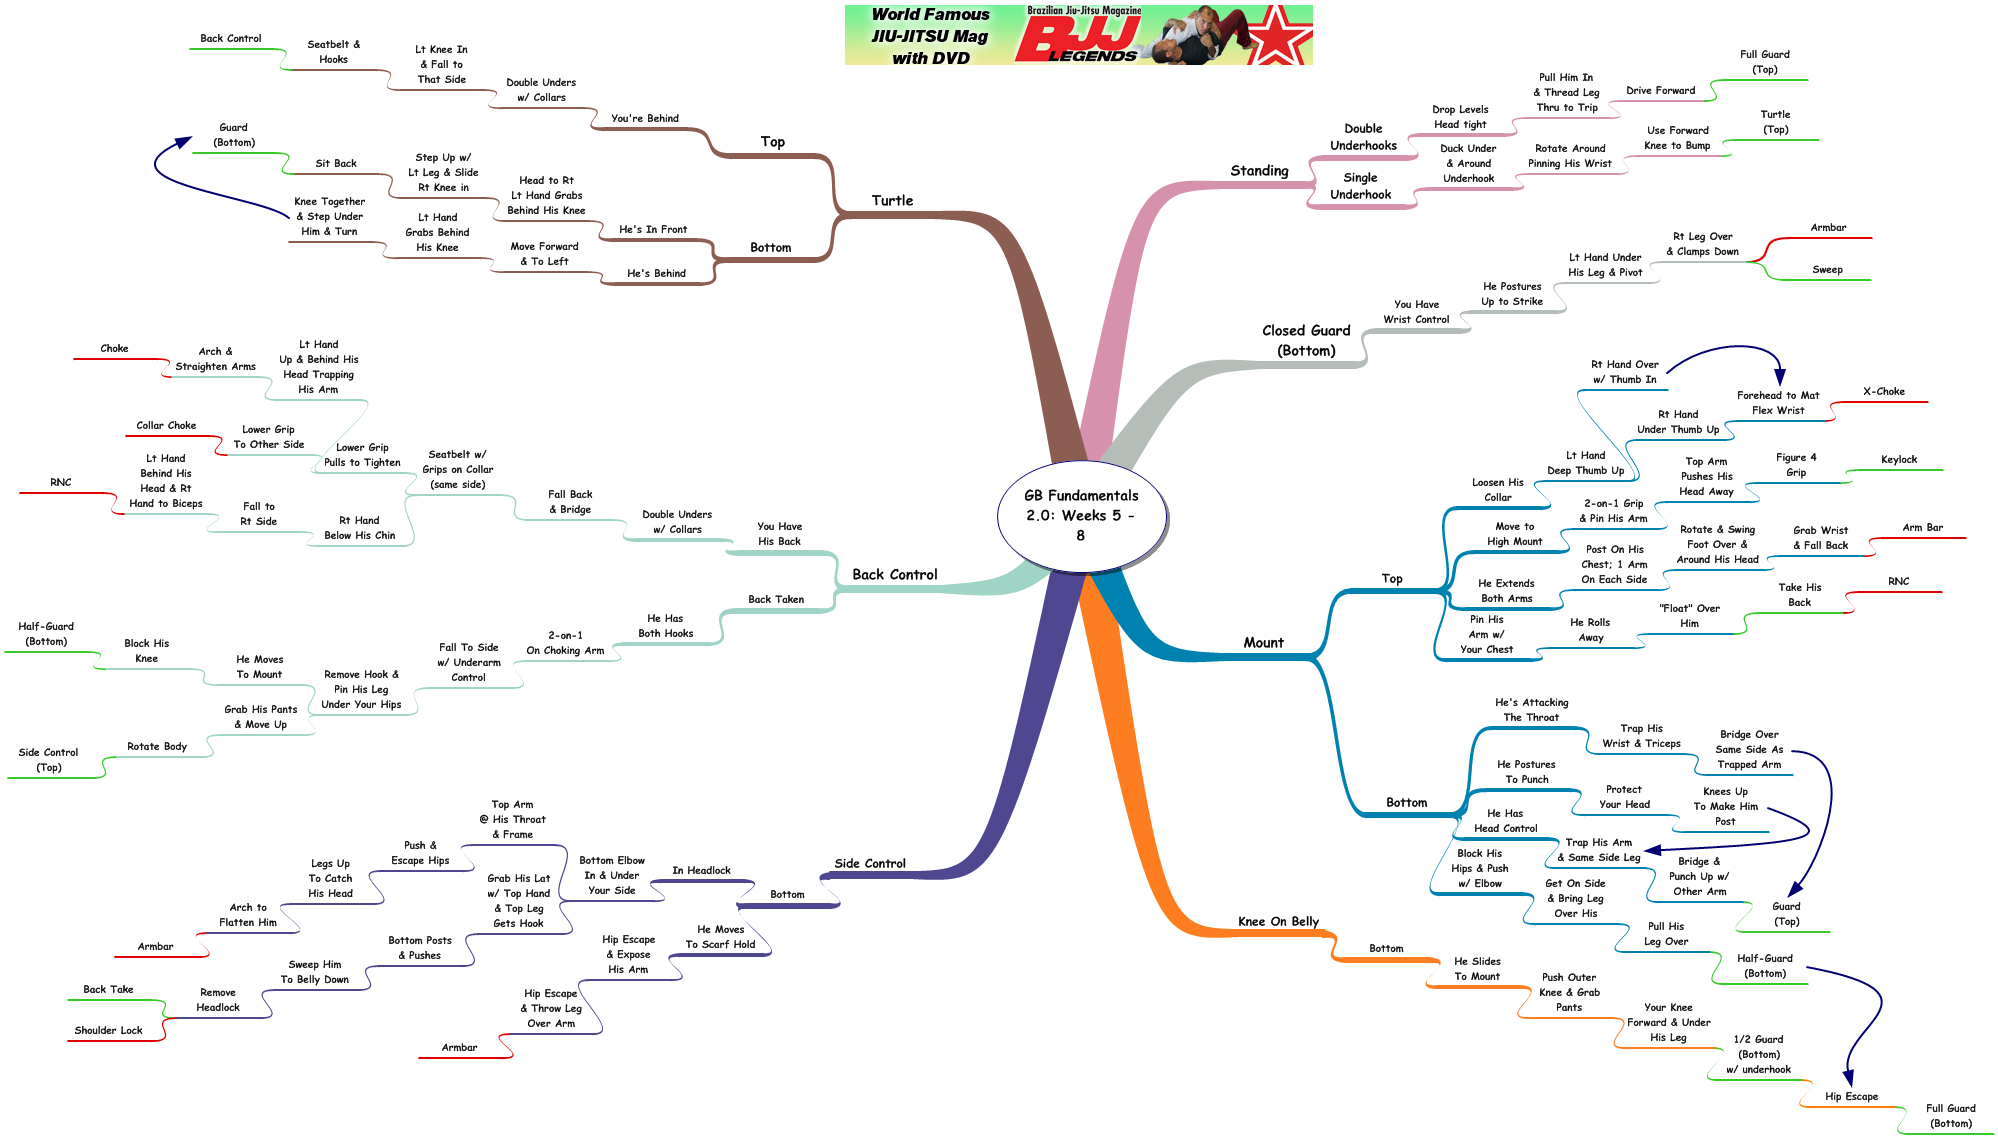 Review/Mindmap: Gracie Barra Fundamentals 2.0 App Weeks 5 thru 8